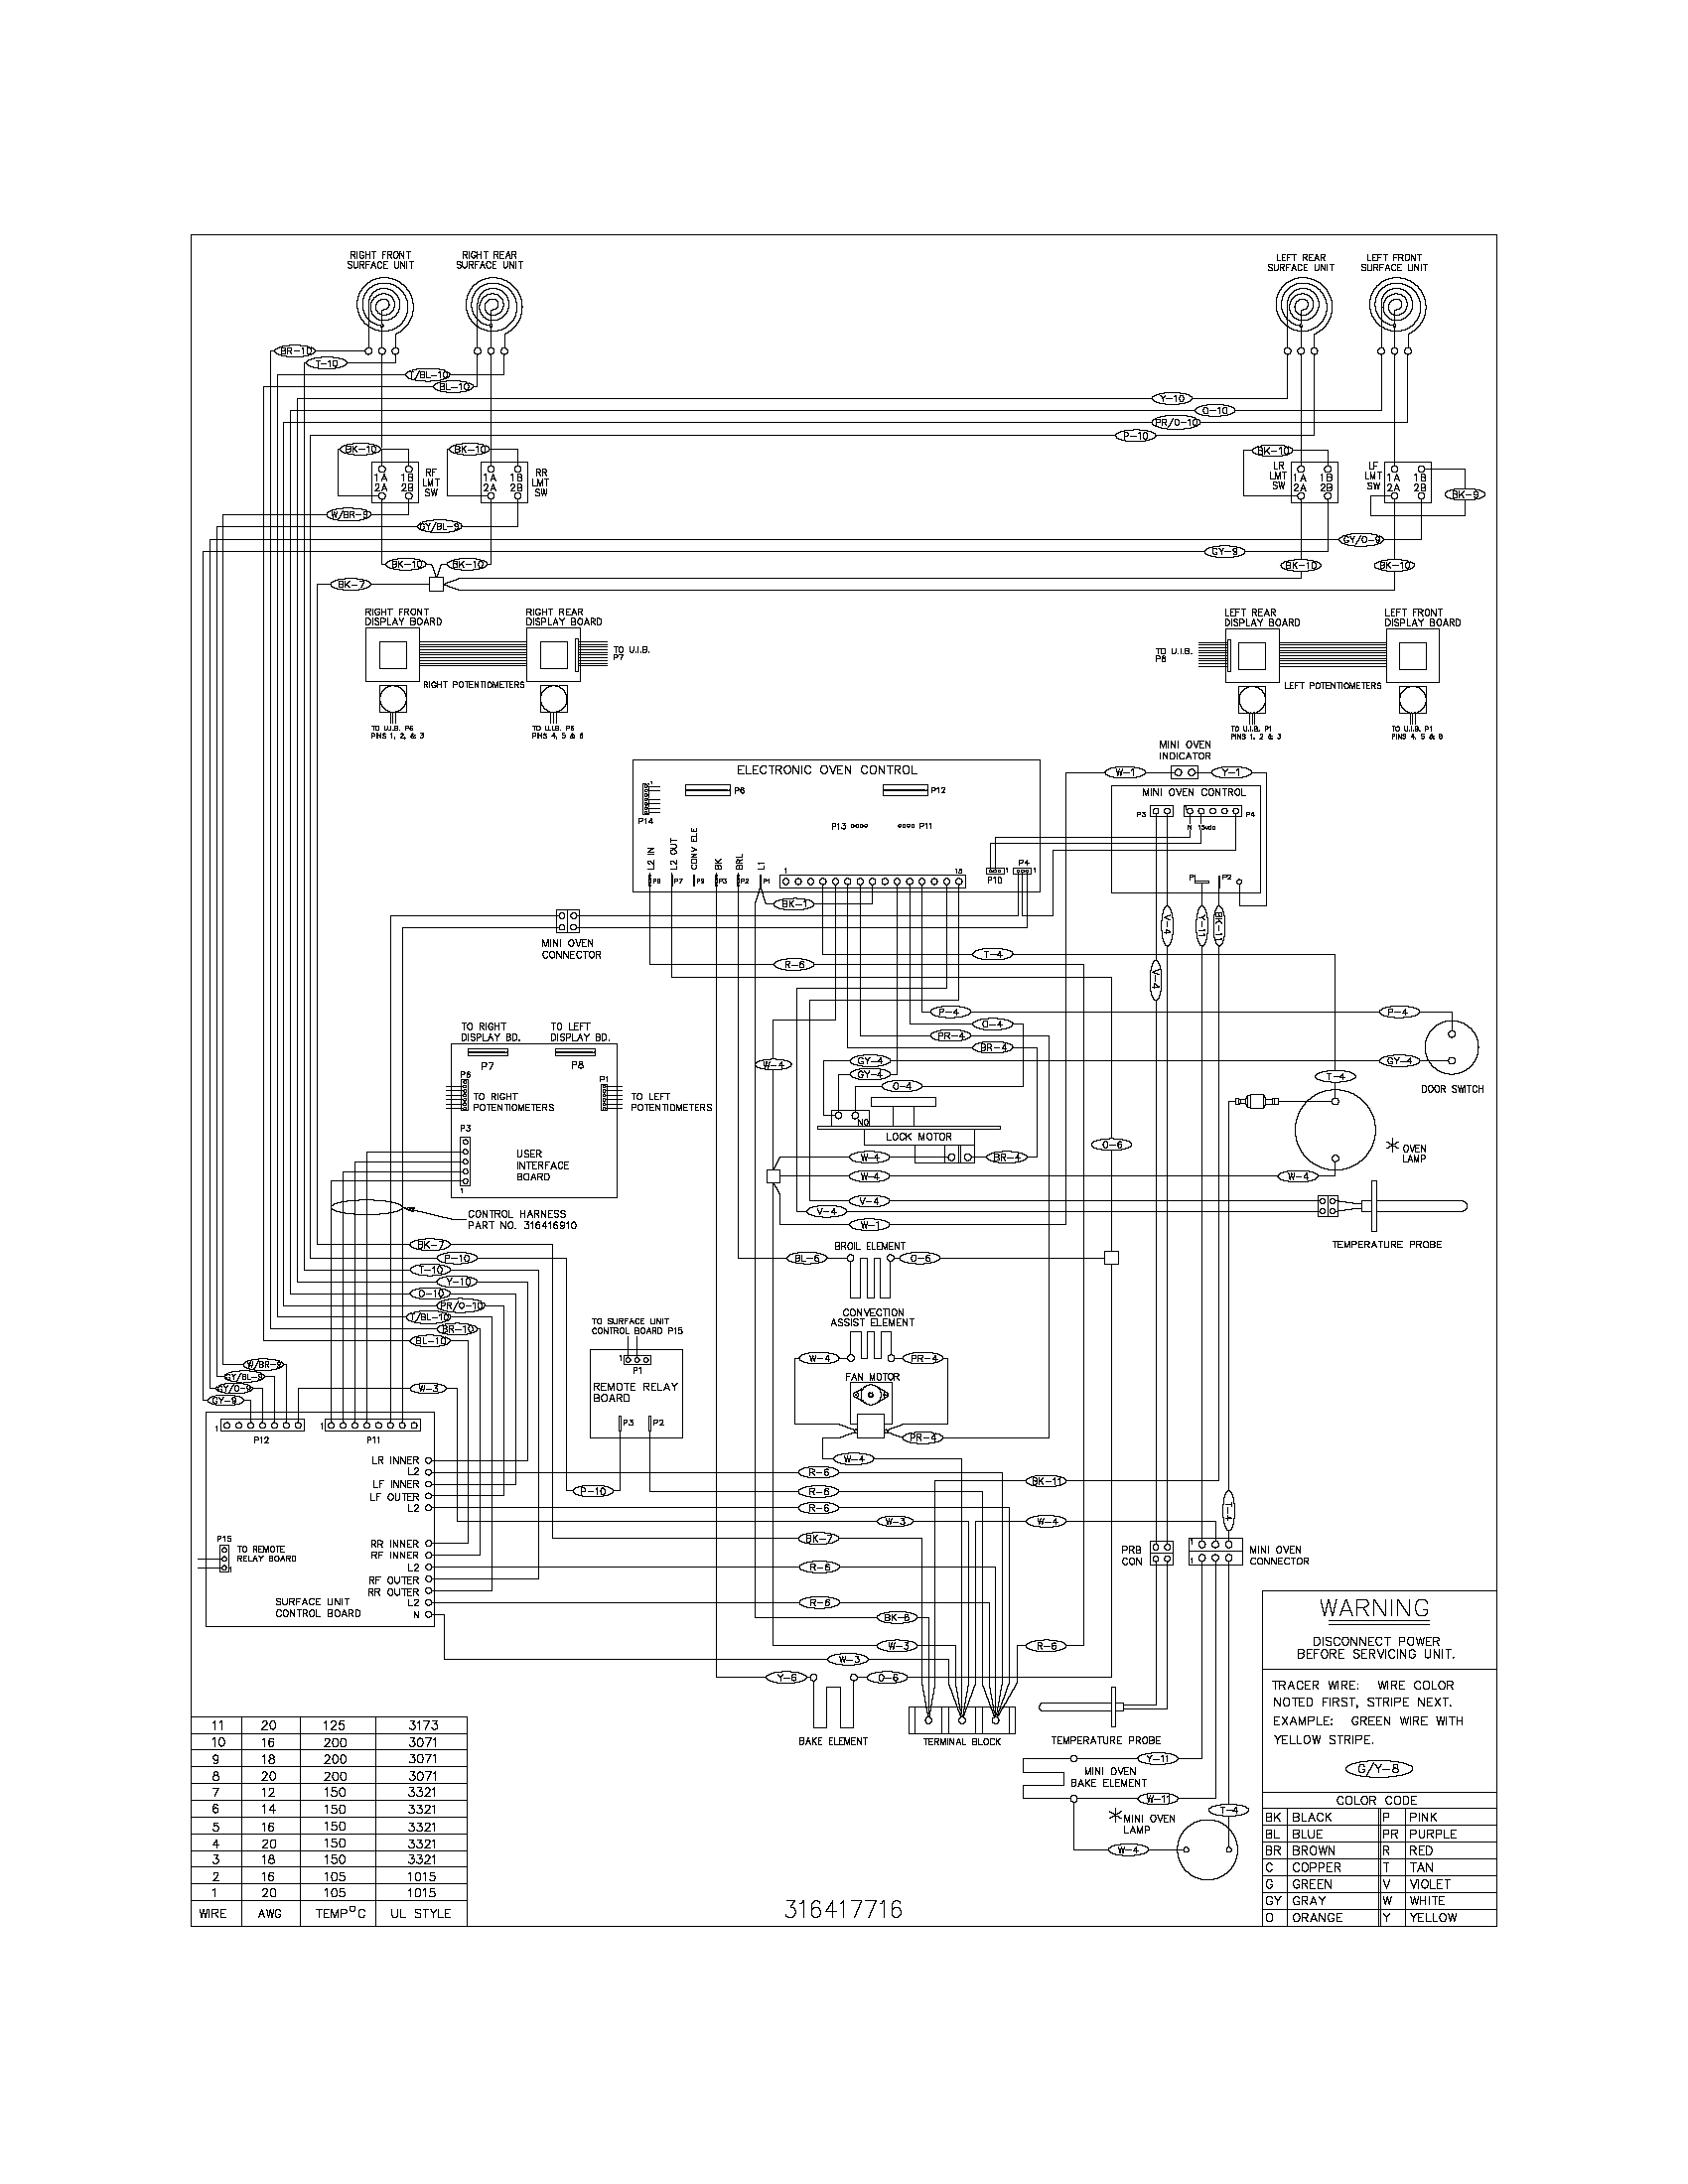 wiring diagram parts odes wiring diagram e z go wiring diagram \u2022 wiring diagrams j vespa vbb wiring diagram at reclaimingppi.co